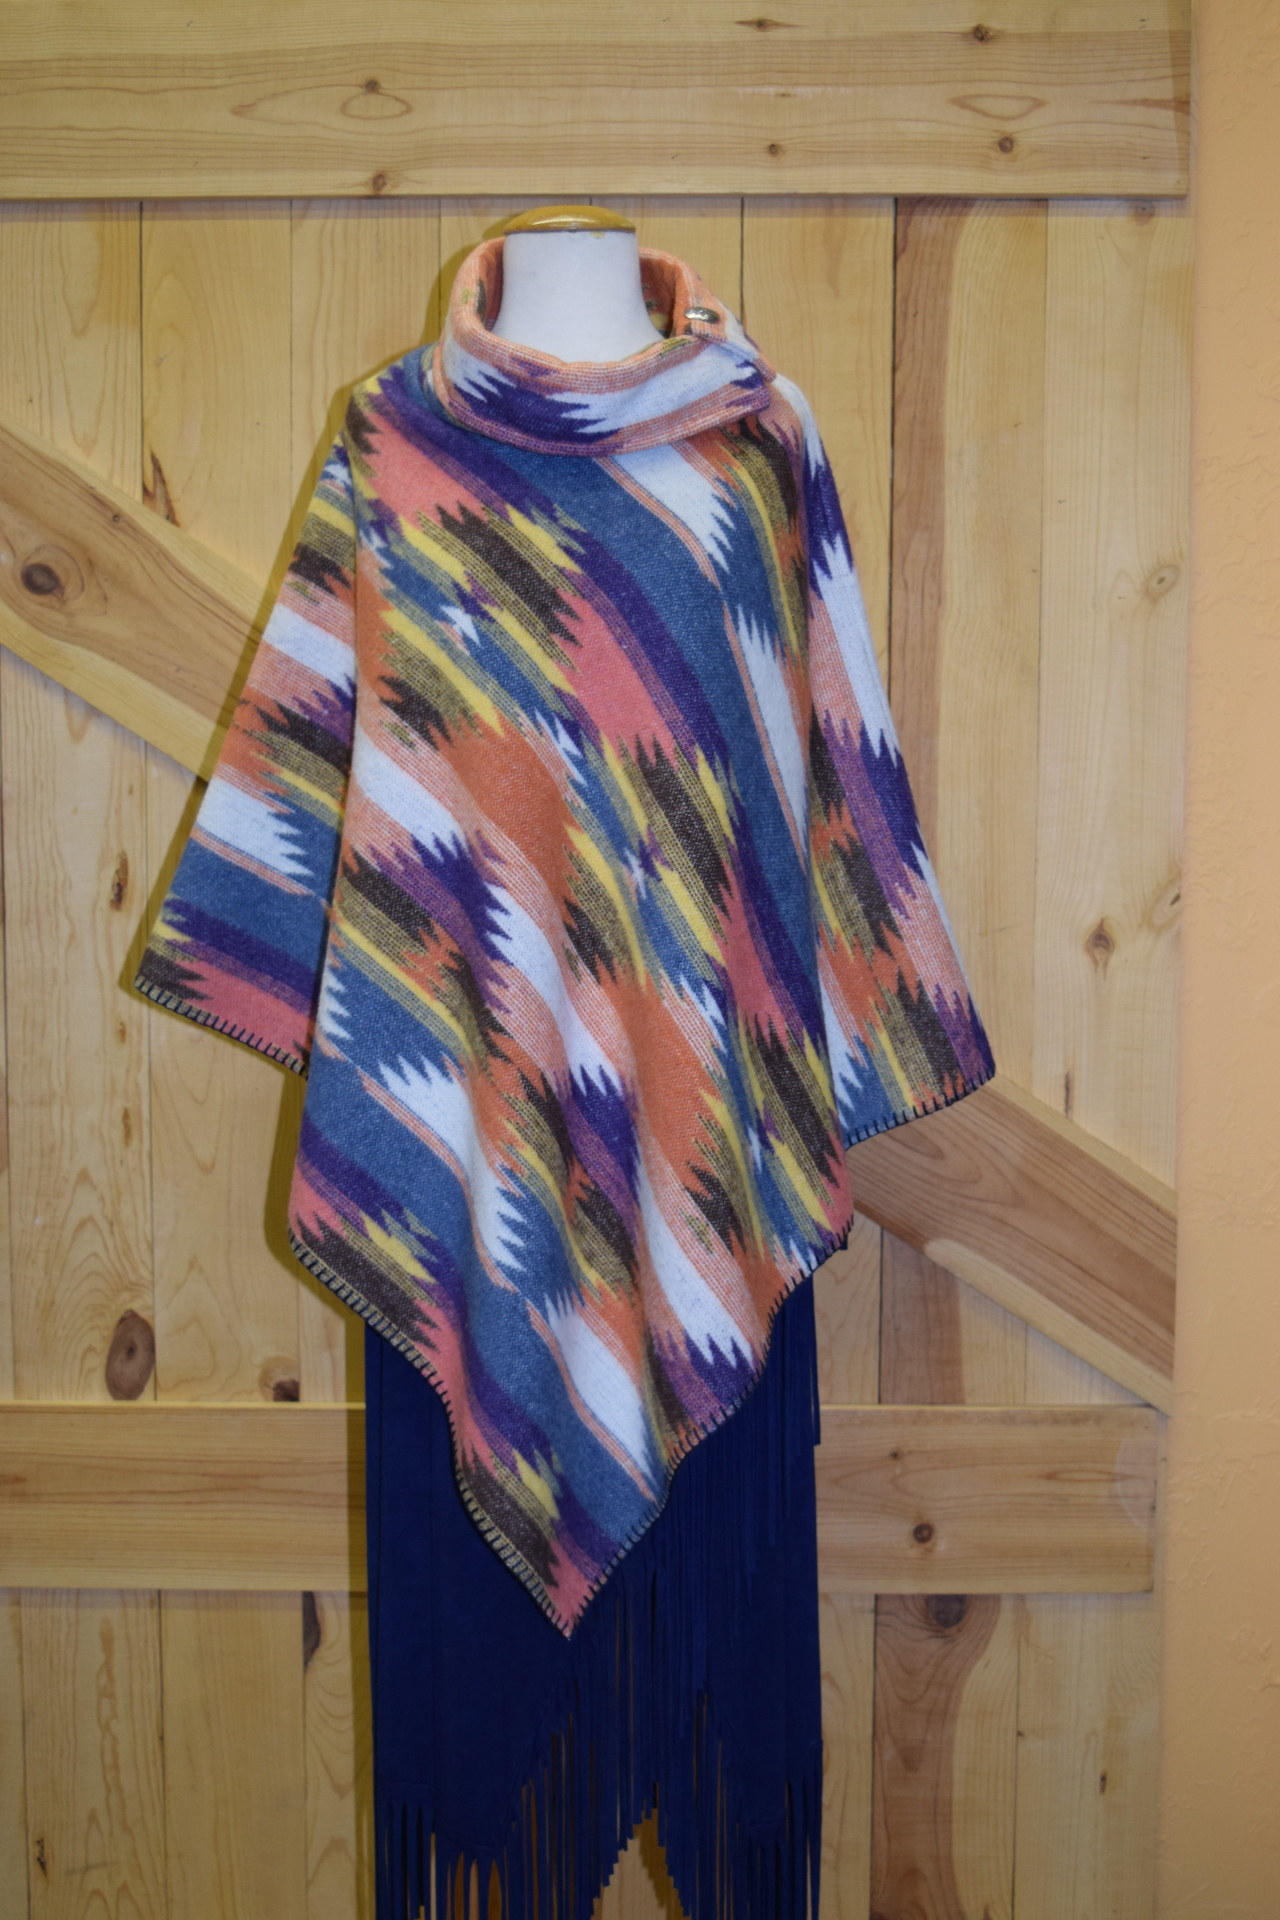 #208ASST. - COL. 4 - BUTTON COLLAR PONCHO - O/S - WAS $129.95 -- SALE $99.95